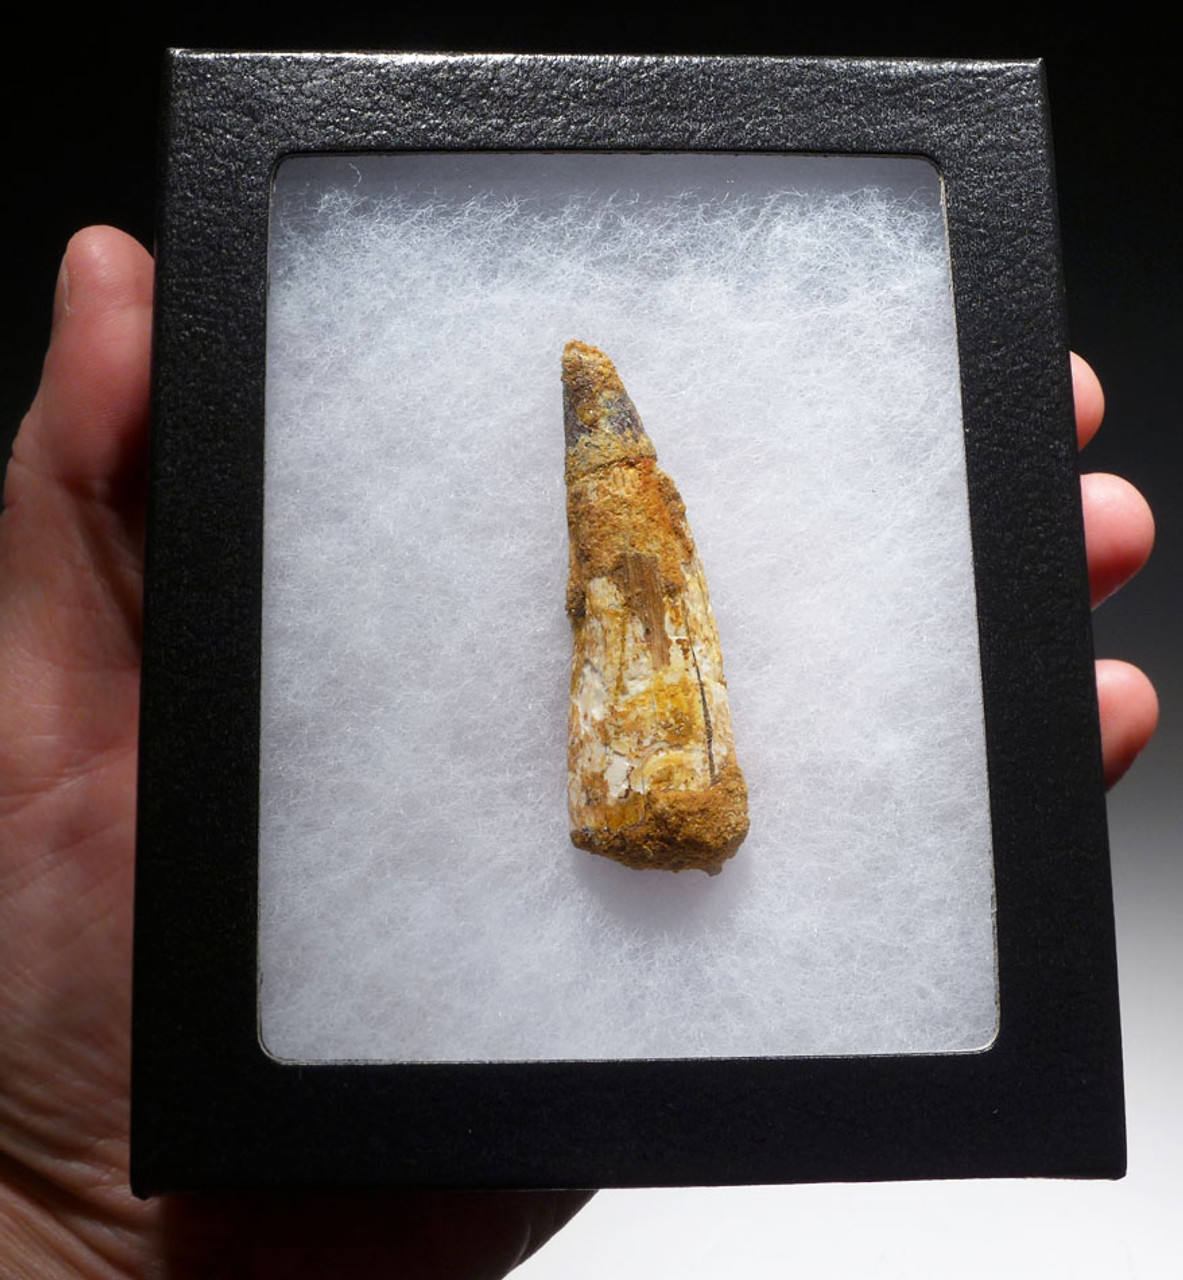 2.5 INCH INEXPENSIVE SPINOSAURUS DINOSAUR FOSSIL TOOTH *DT5-428